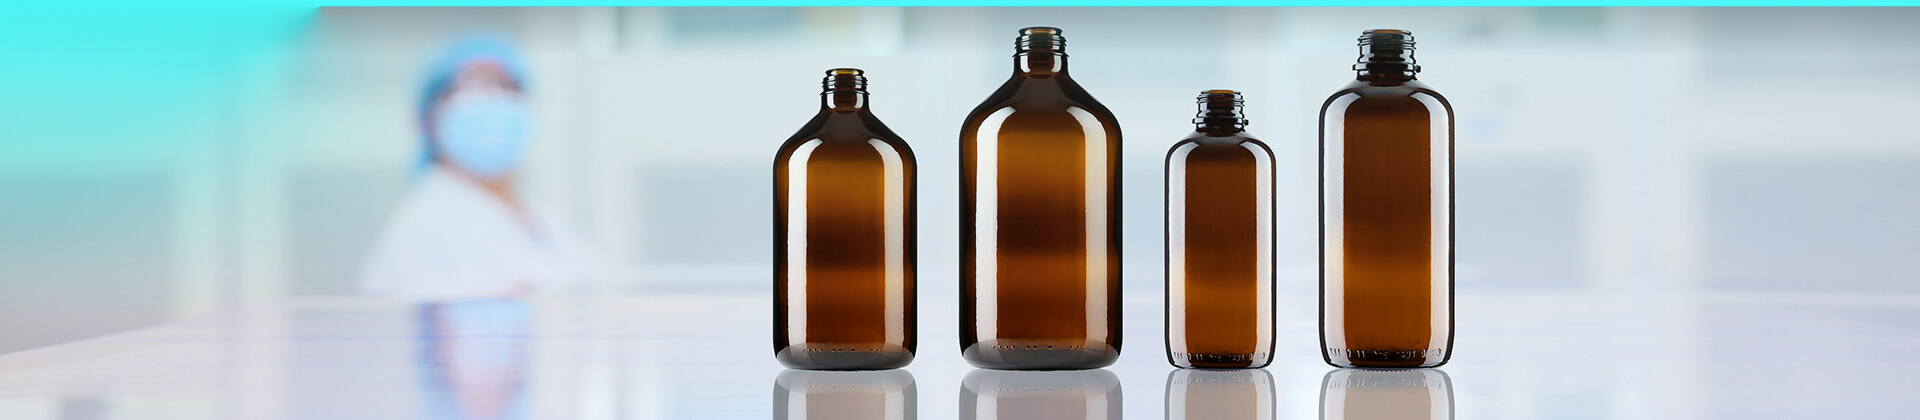 Chemical and technical bottles - Gerresheimer